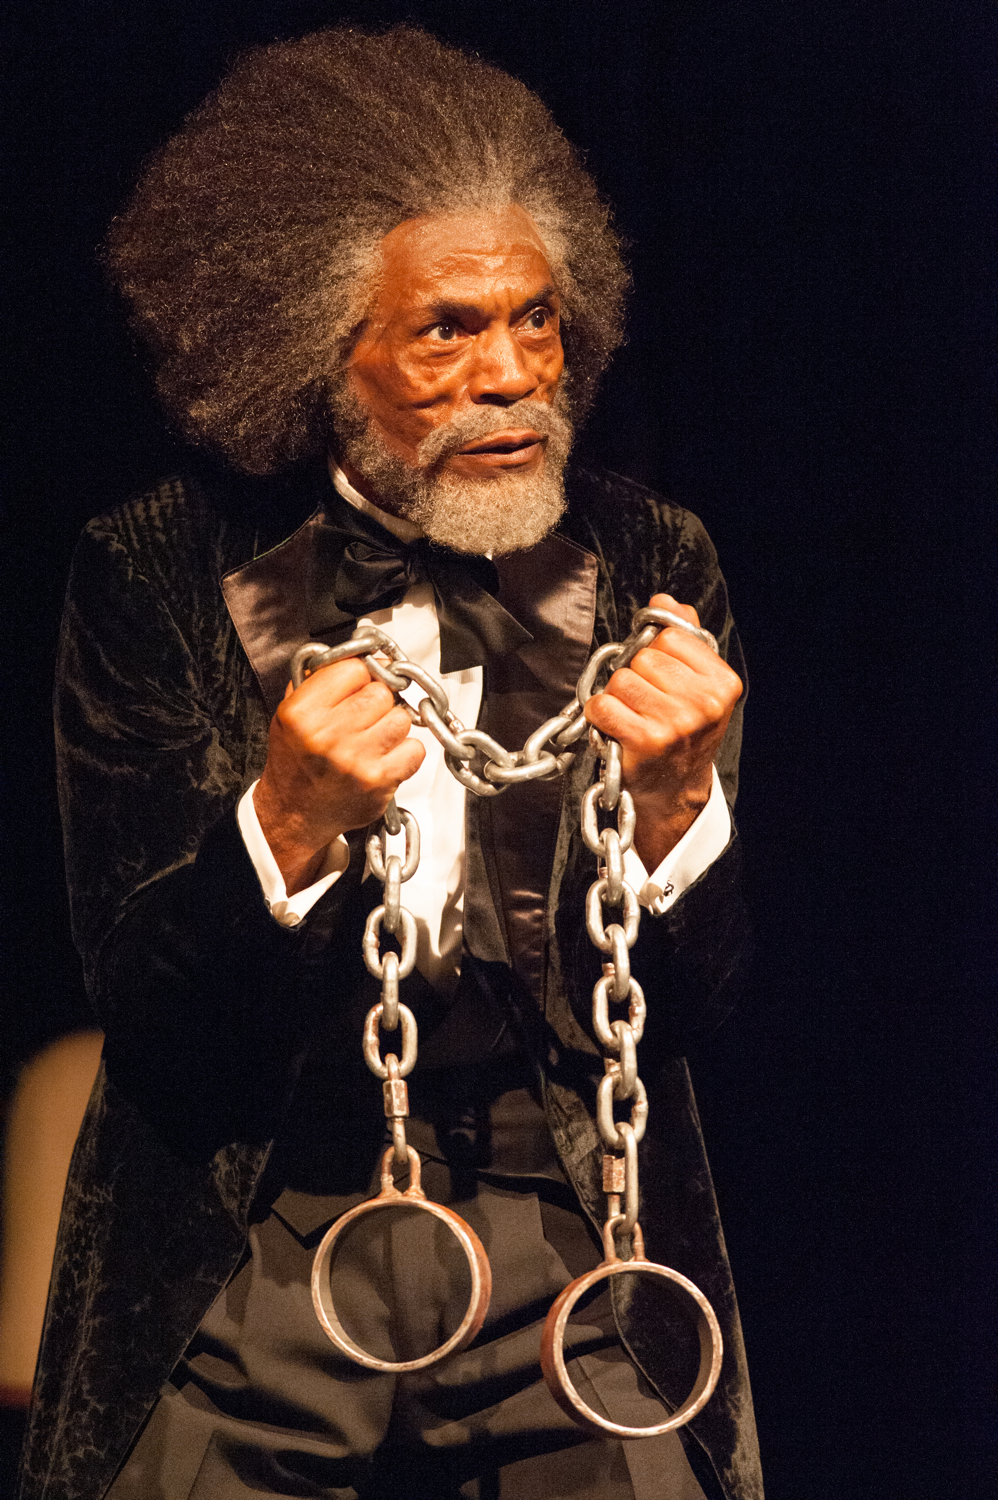 Frederick Douglass: Mine Eyes Have Seen the Glory by André De Shields